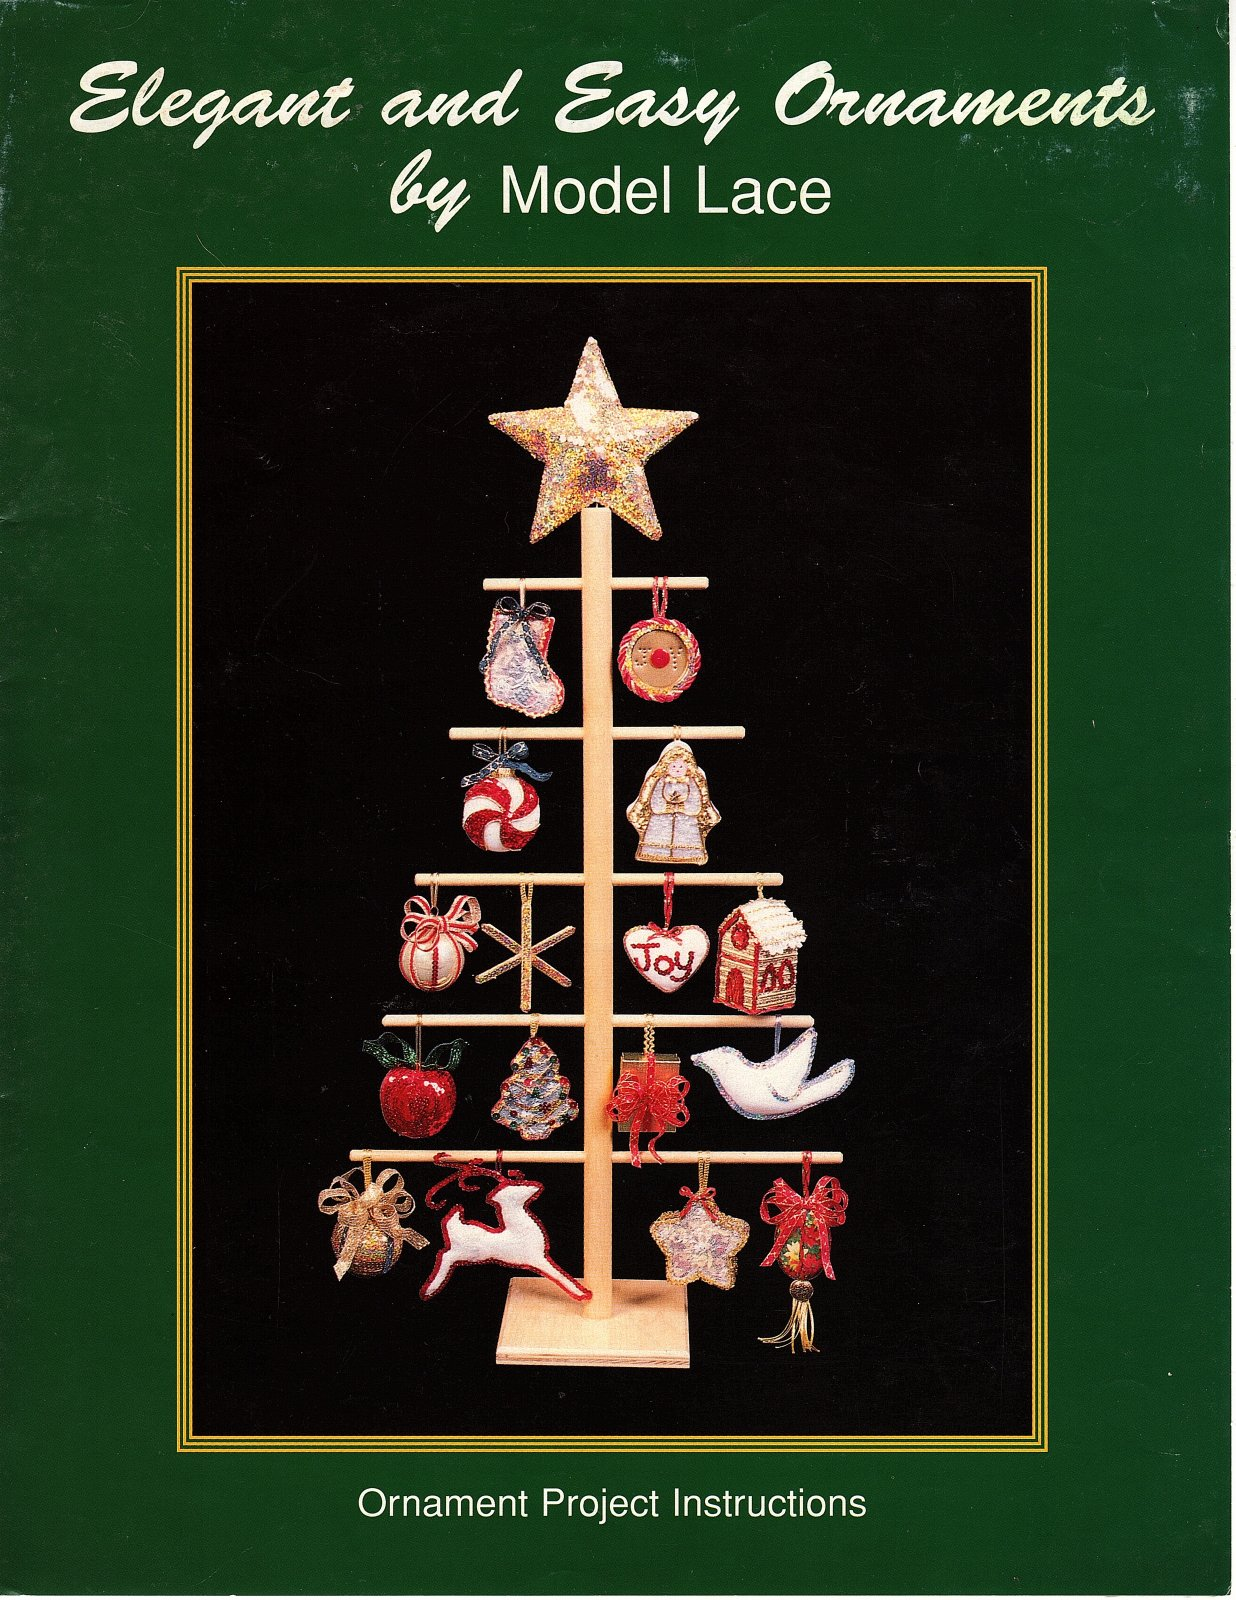 Elegant and Easy Ornaments by Model Lace designed by Kathryn P. Schmitz